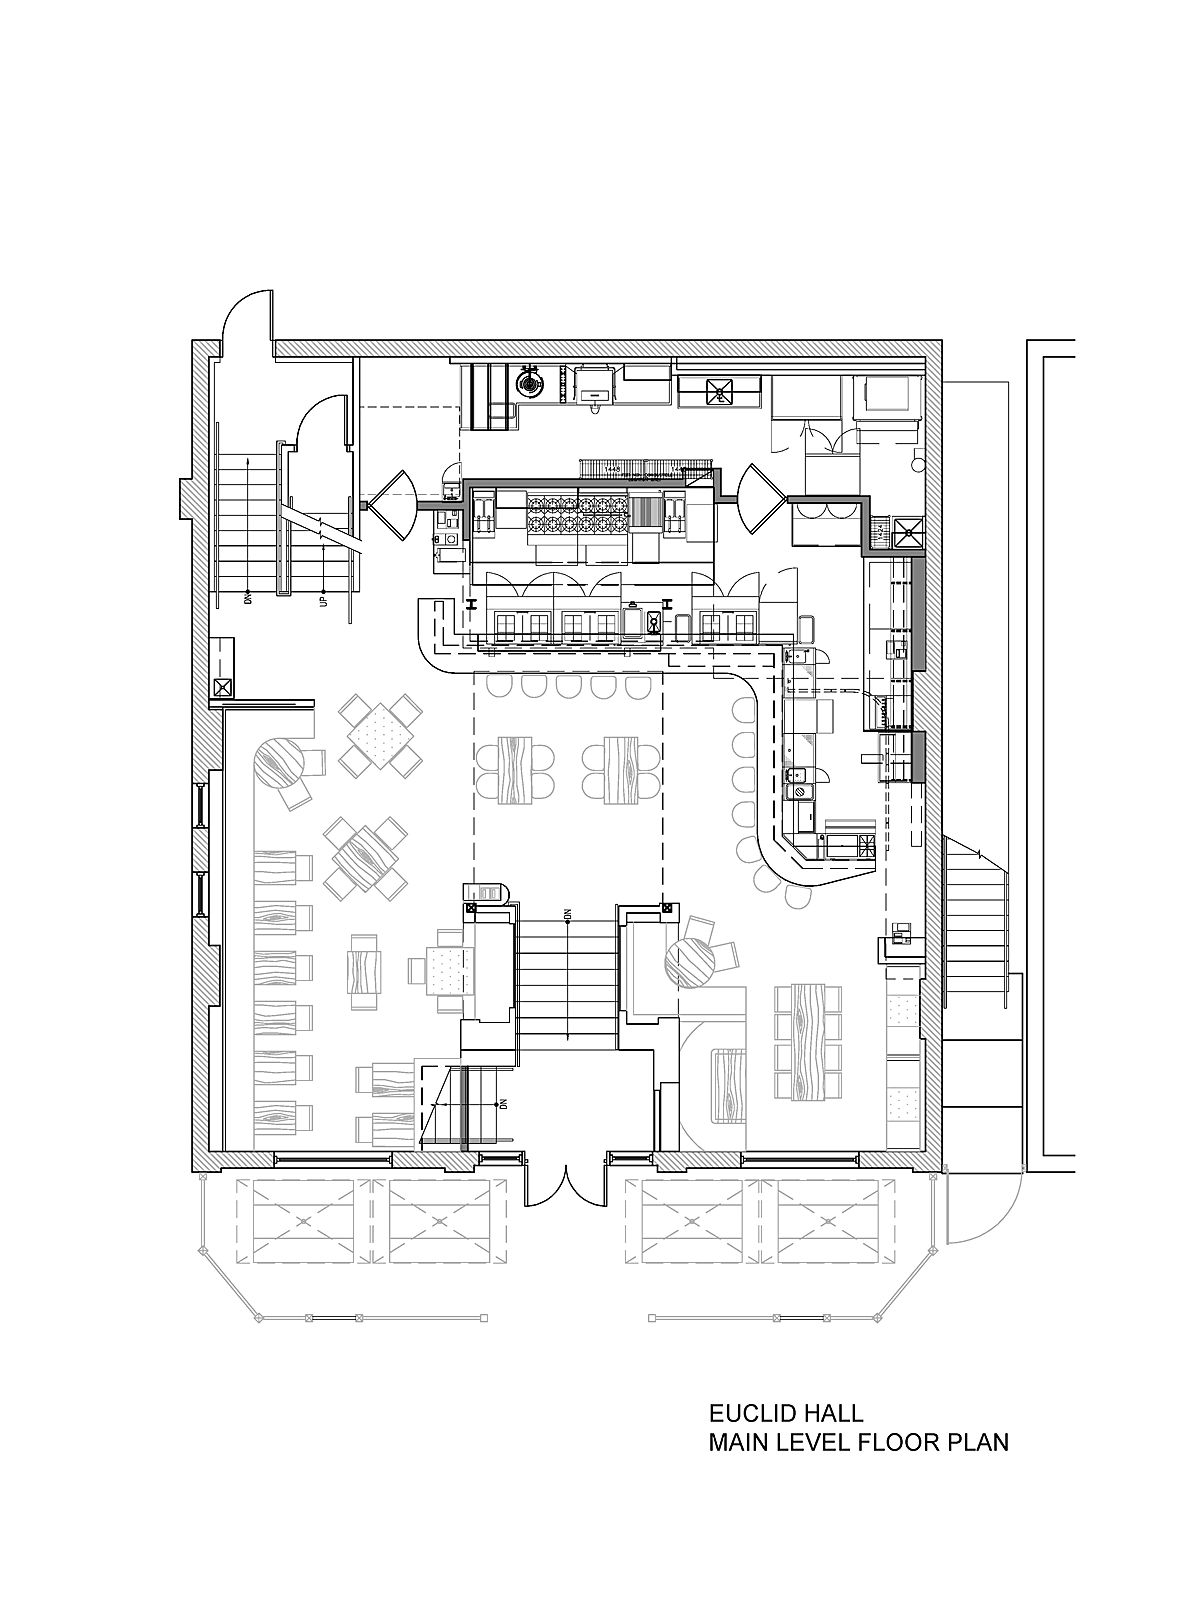 10x10 Kitchen Floor Plans Euclid Hall Bar And Kitchen Semple Brown Architects